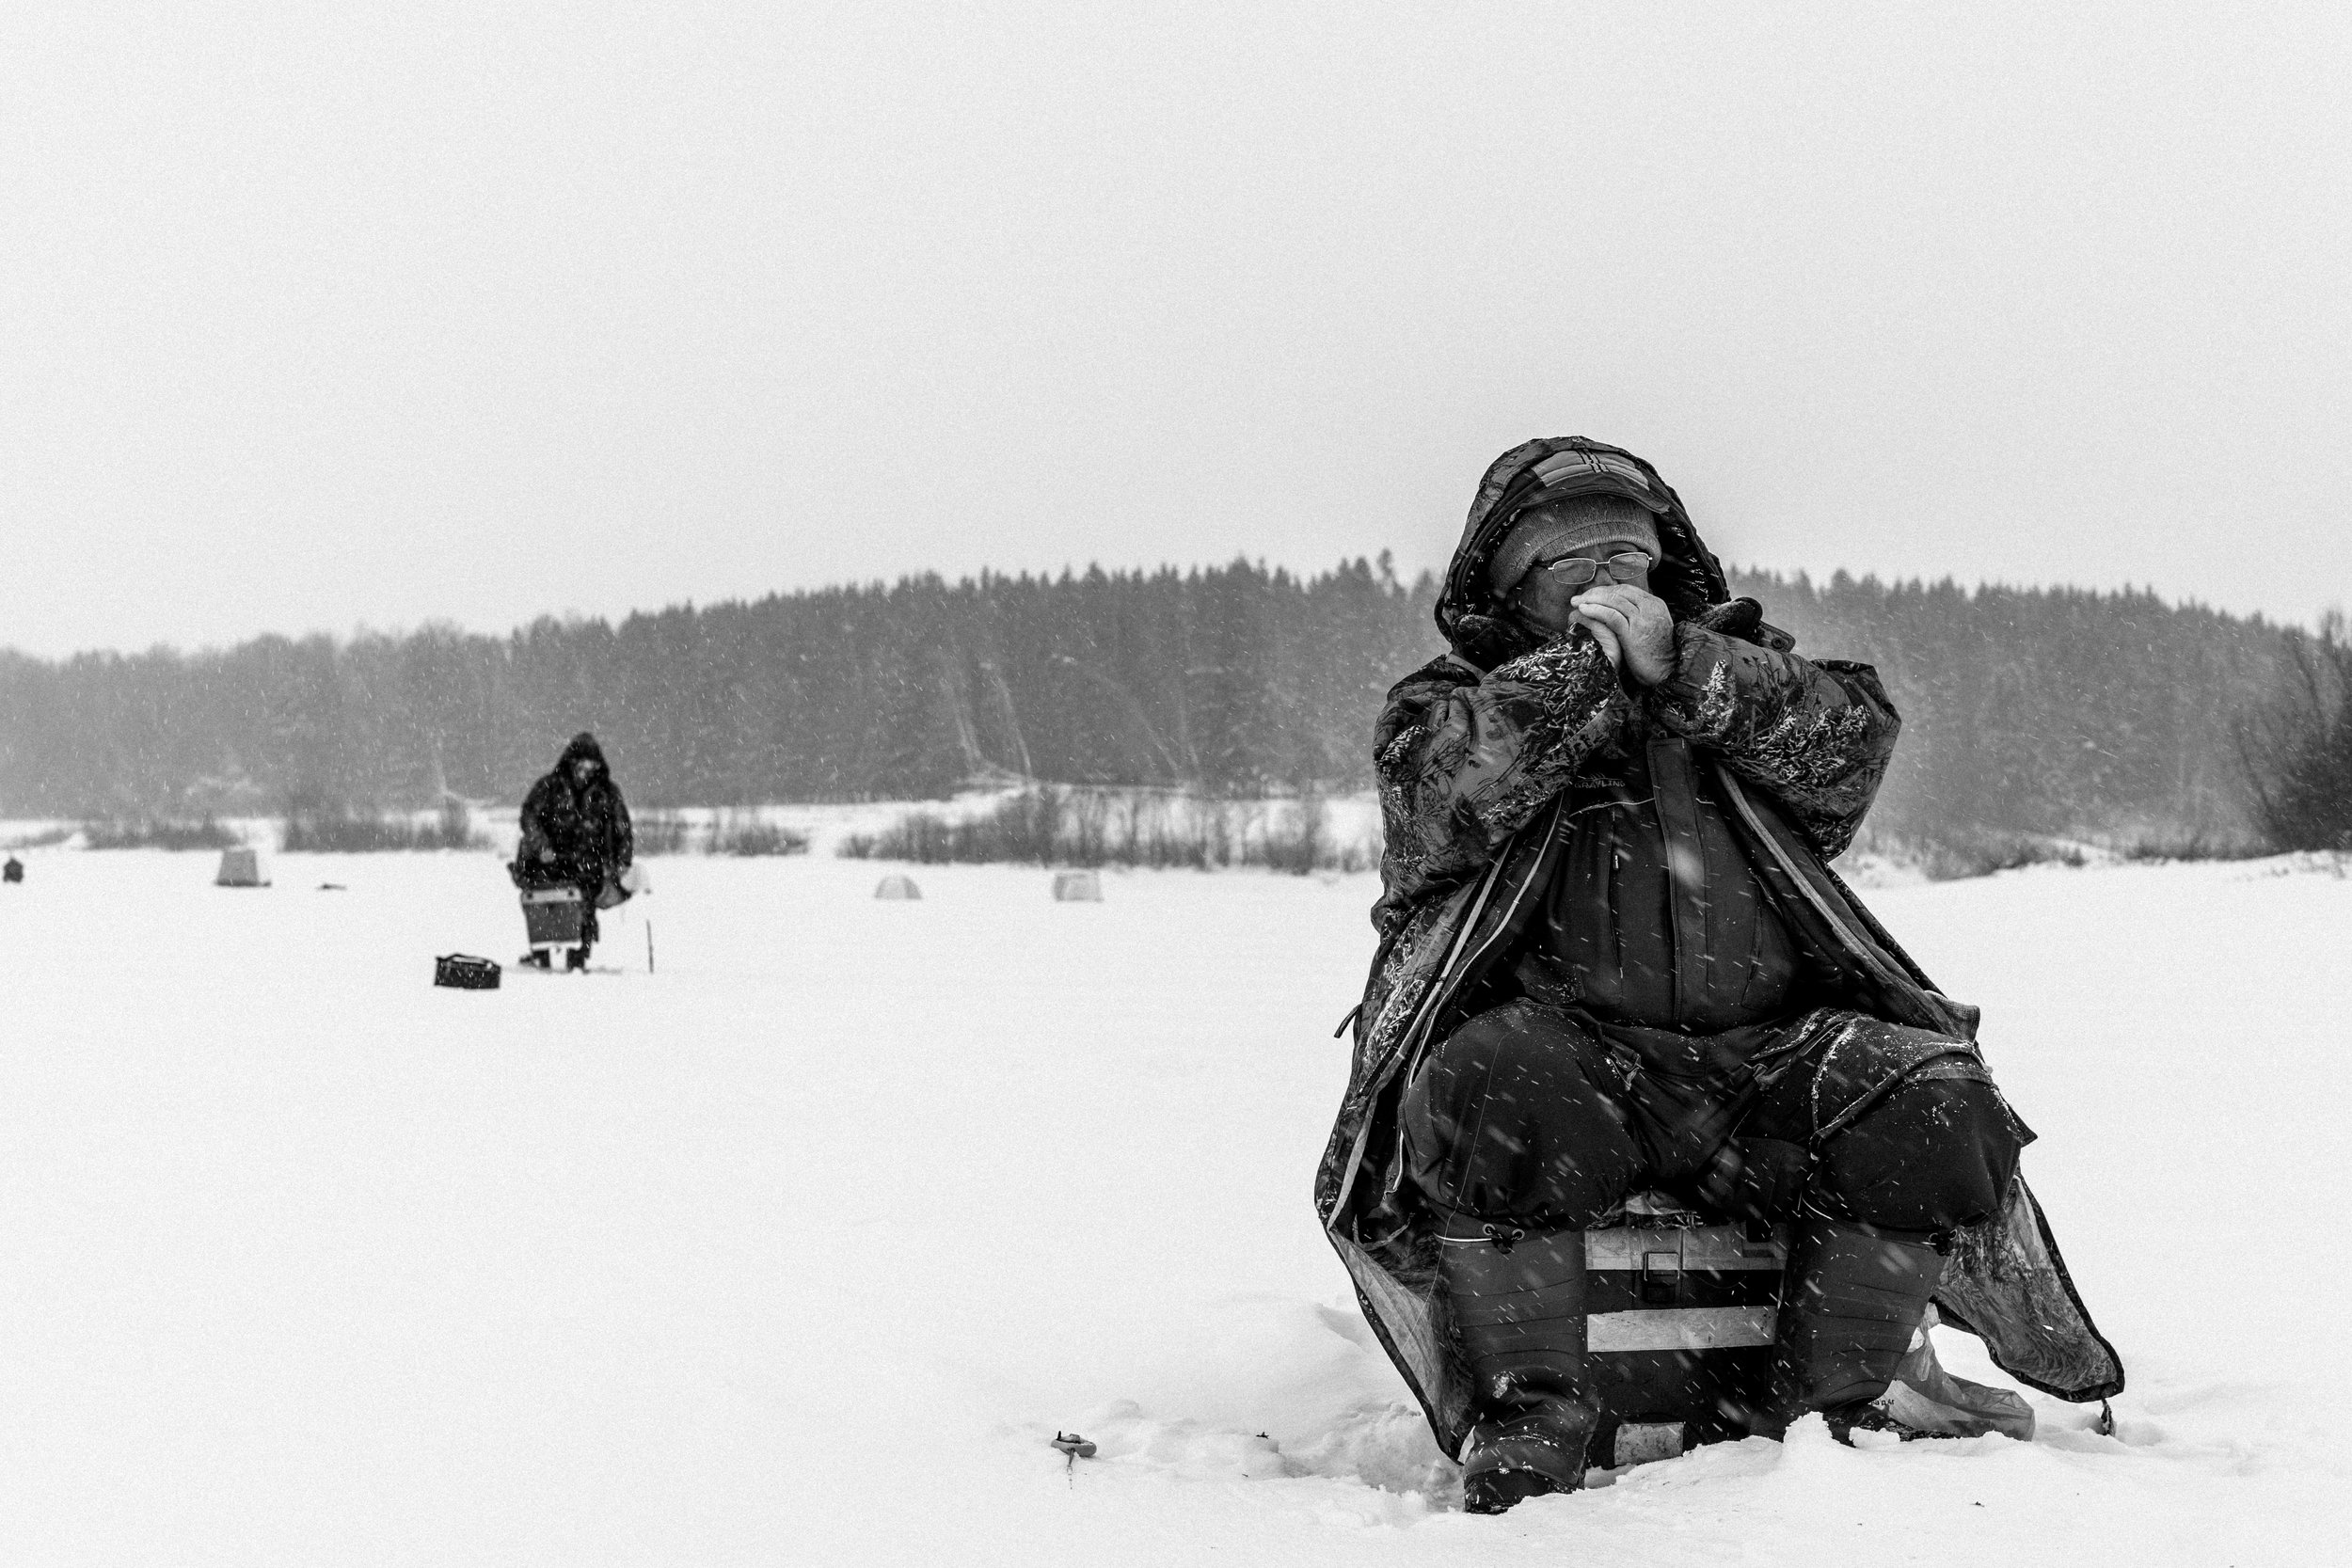 A long winter - Photography essay